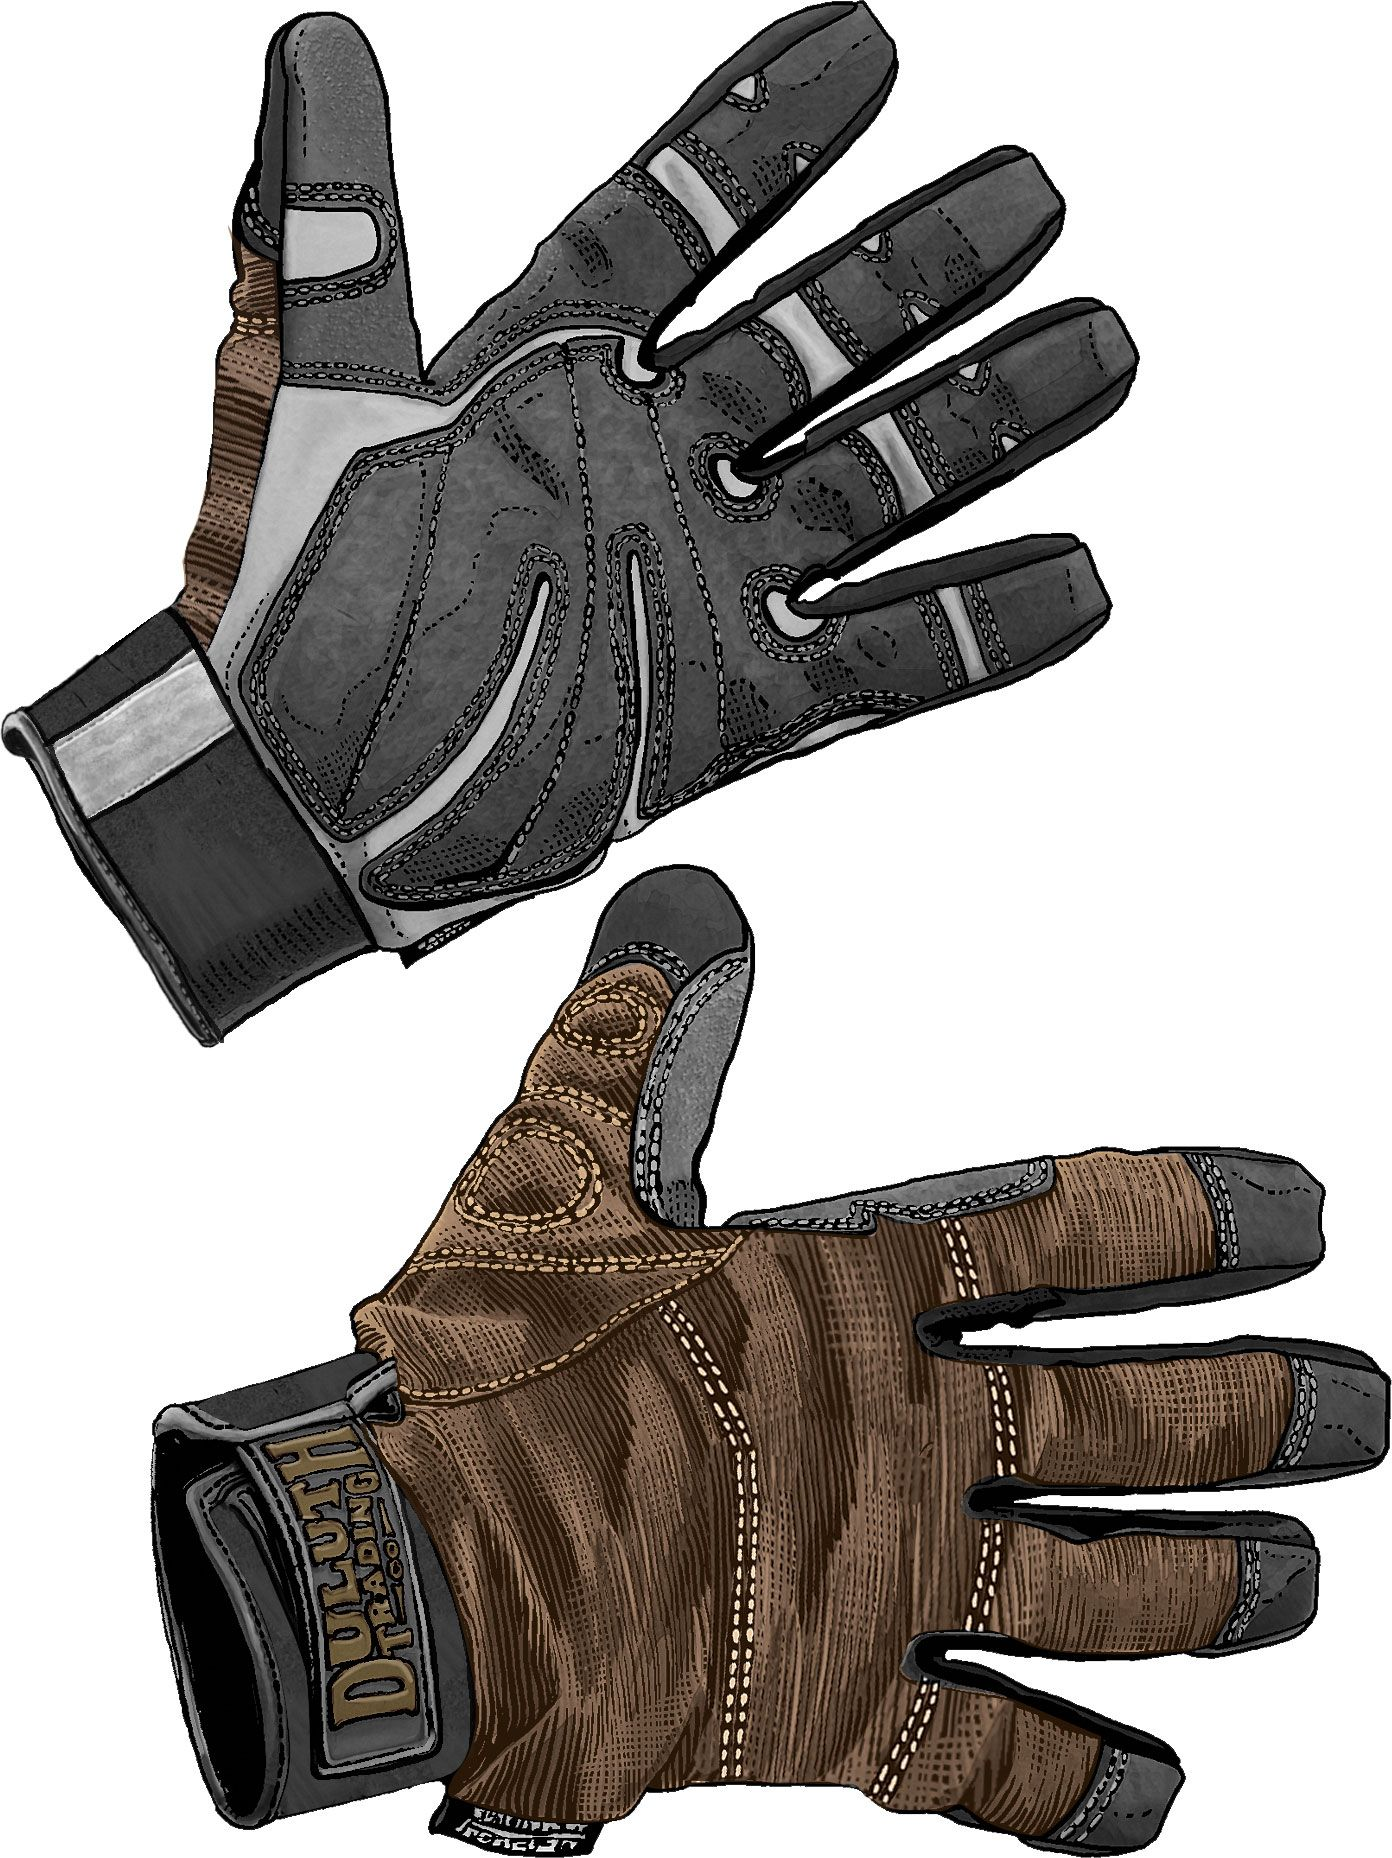 Justin leather work gloves - Men S Duluth Trading Winterproof Work Gloves Feature Ironclad Technology To Make Them As Tough As Work